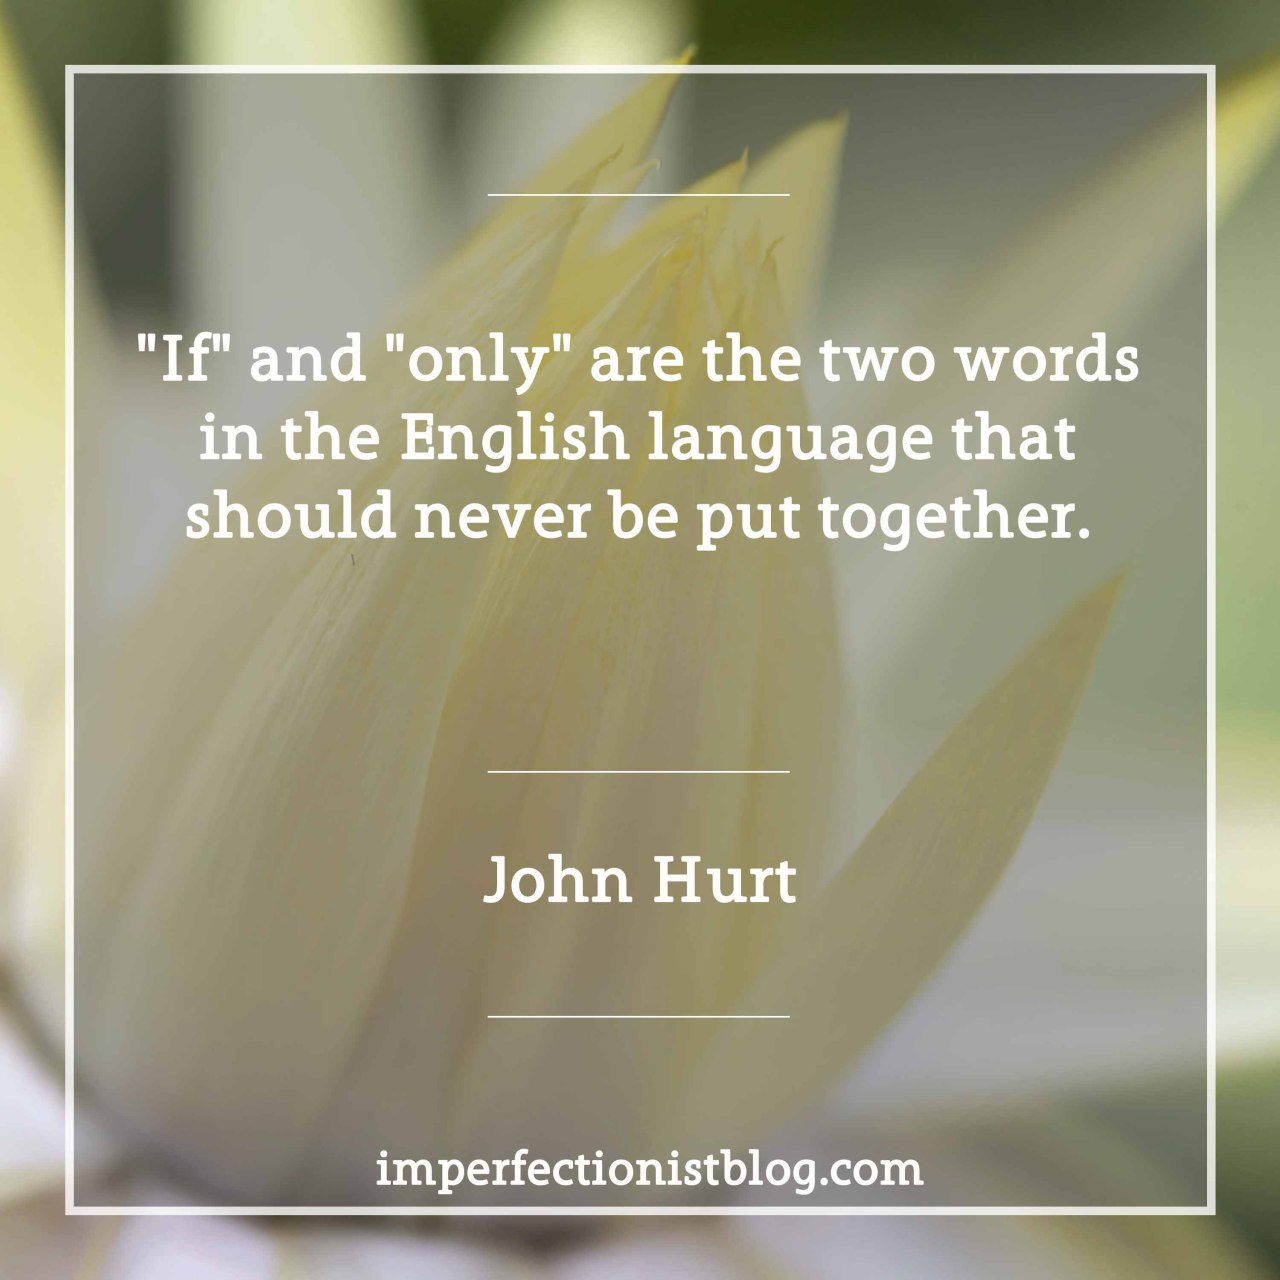 "#326 - ""'If' and 'only' are the two words in the English language that should never be put together."" -John HurtRead his full 2006 interview with The Guardian: http://bit.ly/2jpb3R7"